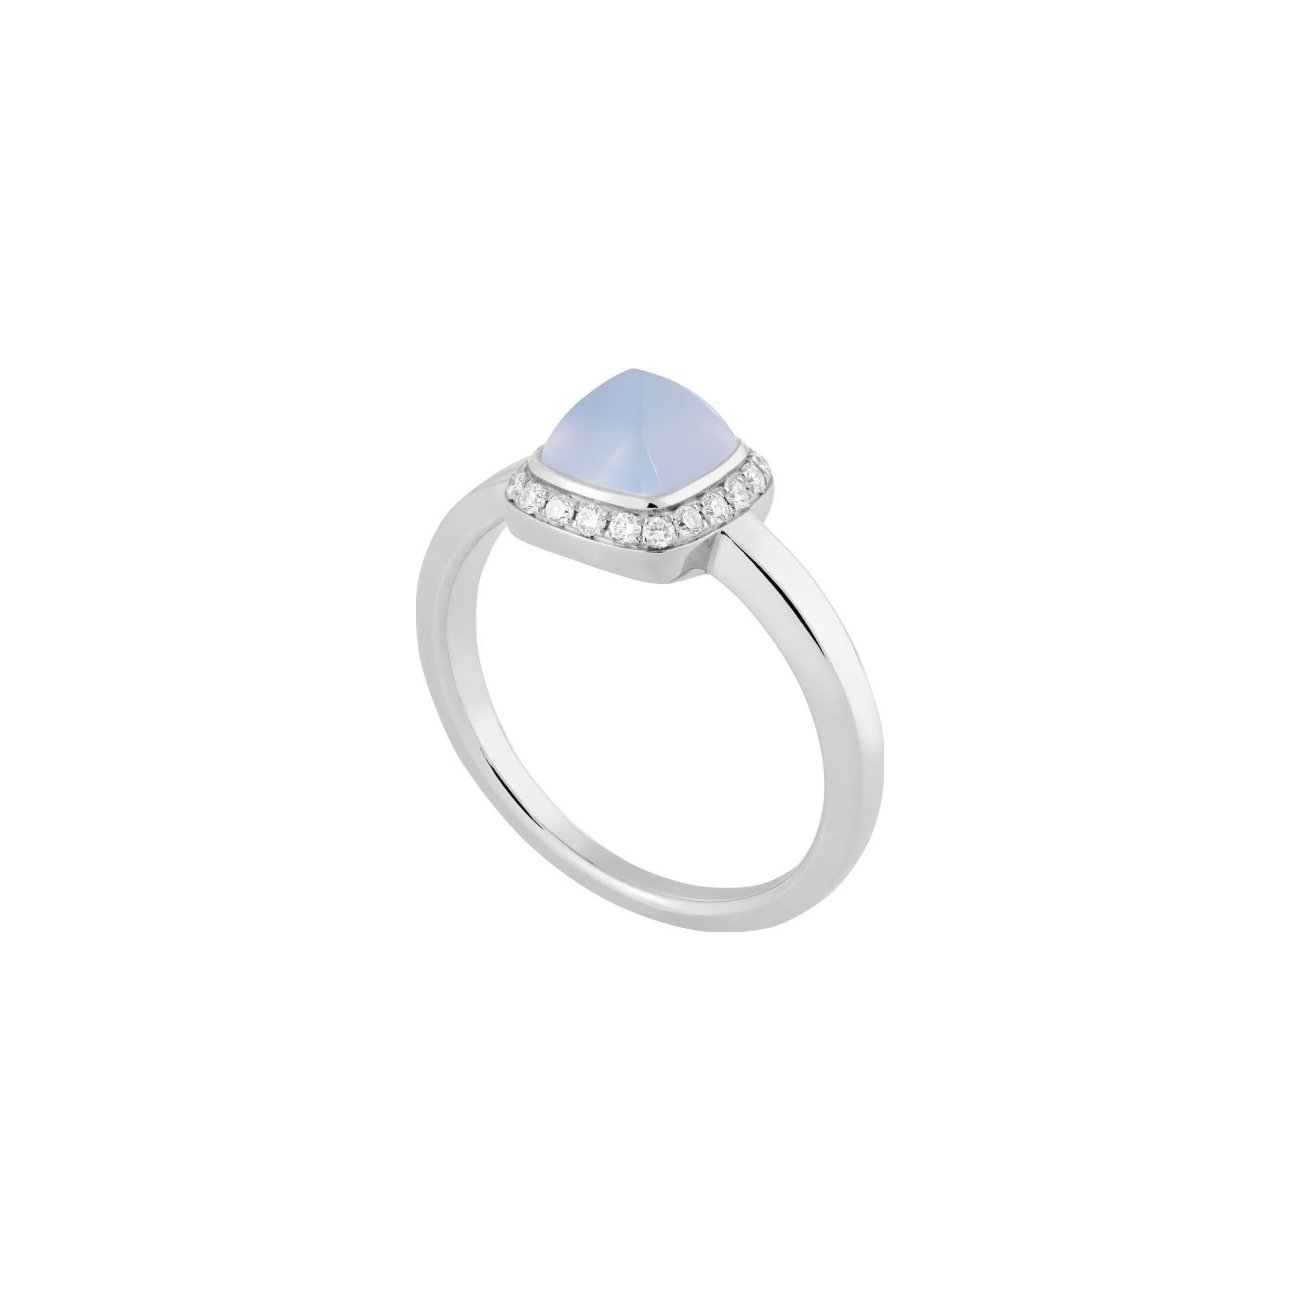 Bague FRED Pain de sucre en or blanc, diamants et calcédoine vue 1